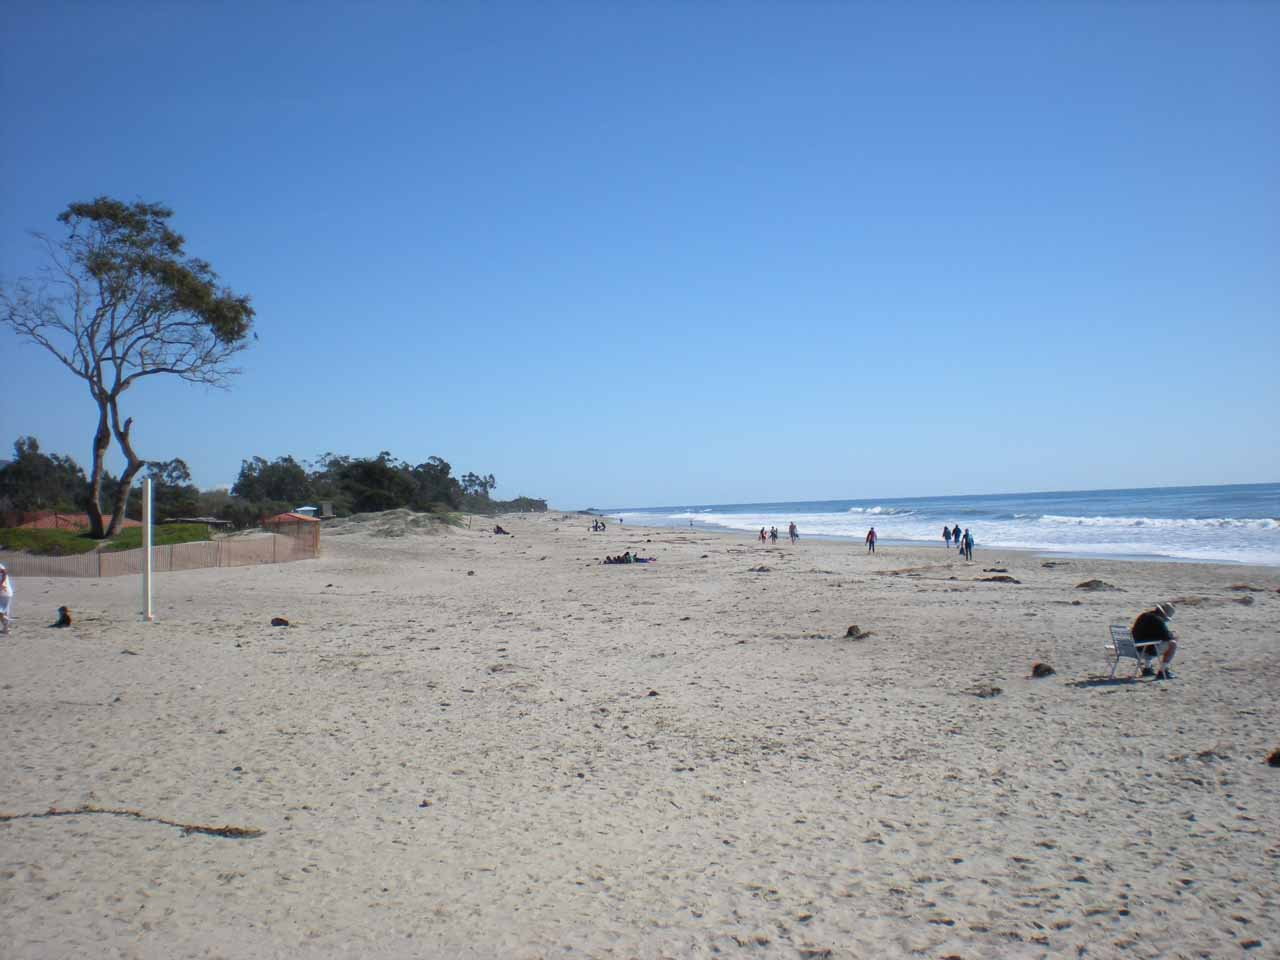 And just about 10 miles further south of Santa Barbara was the town of Carpinteria, which featured a pleasant stretch of beach